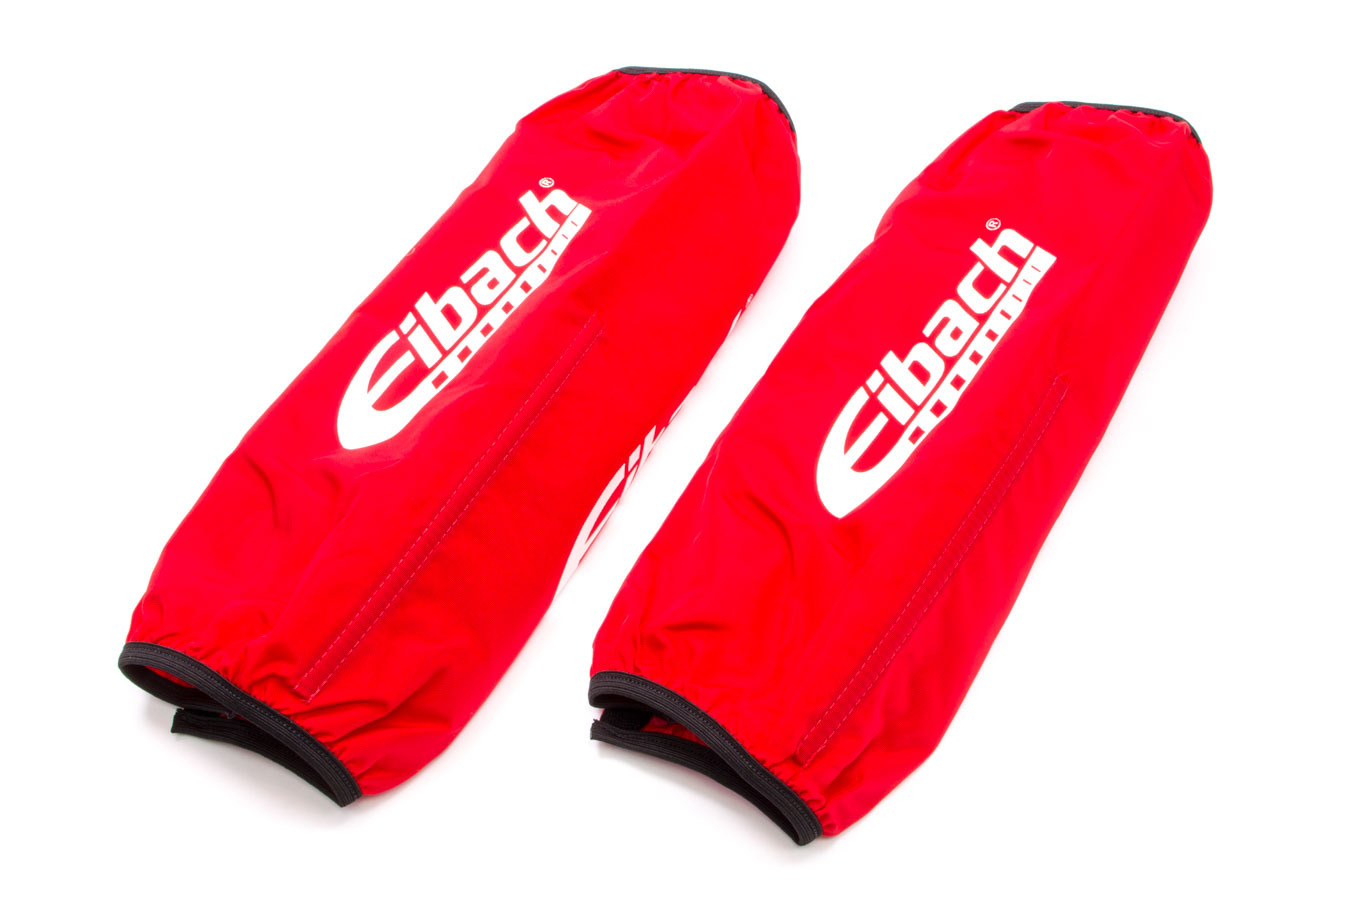 Eibach ESB14-500 Shock Cover, 12-14 in Long, 5.000 in OD Coil-Over, Elastic Ends, Hook and Loop Closure, Nylon, Red, Eibach Shocks, Pair